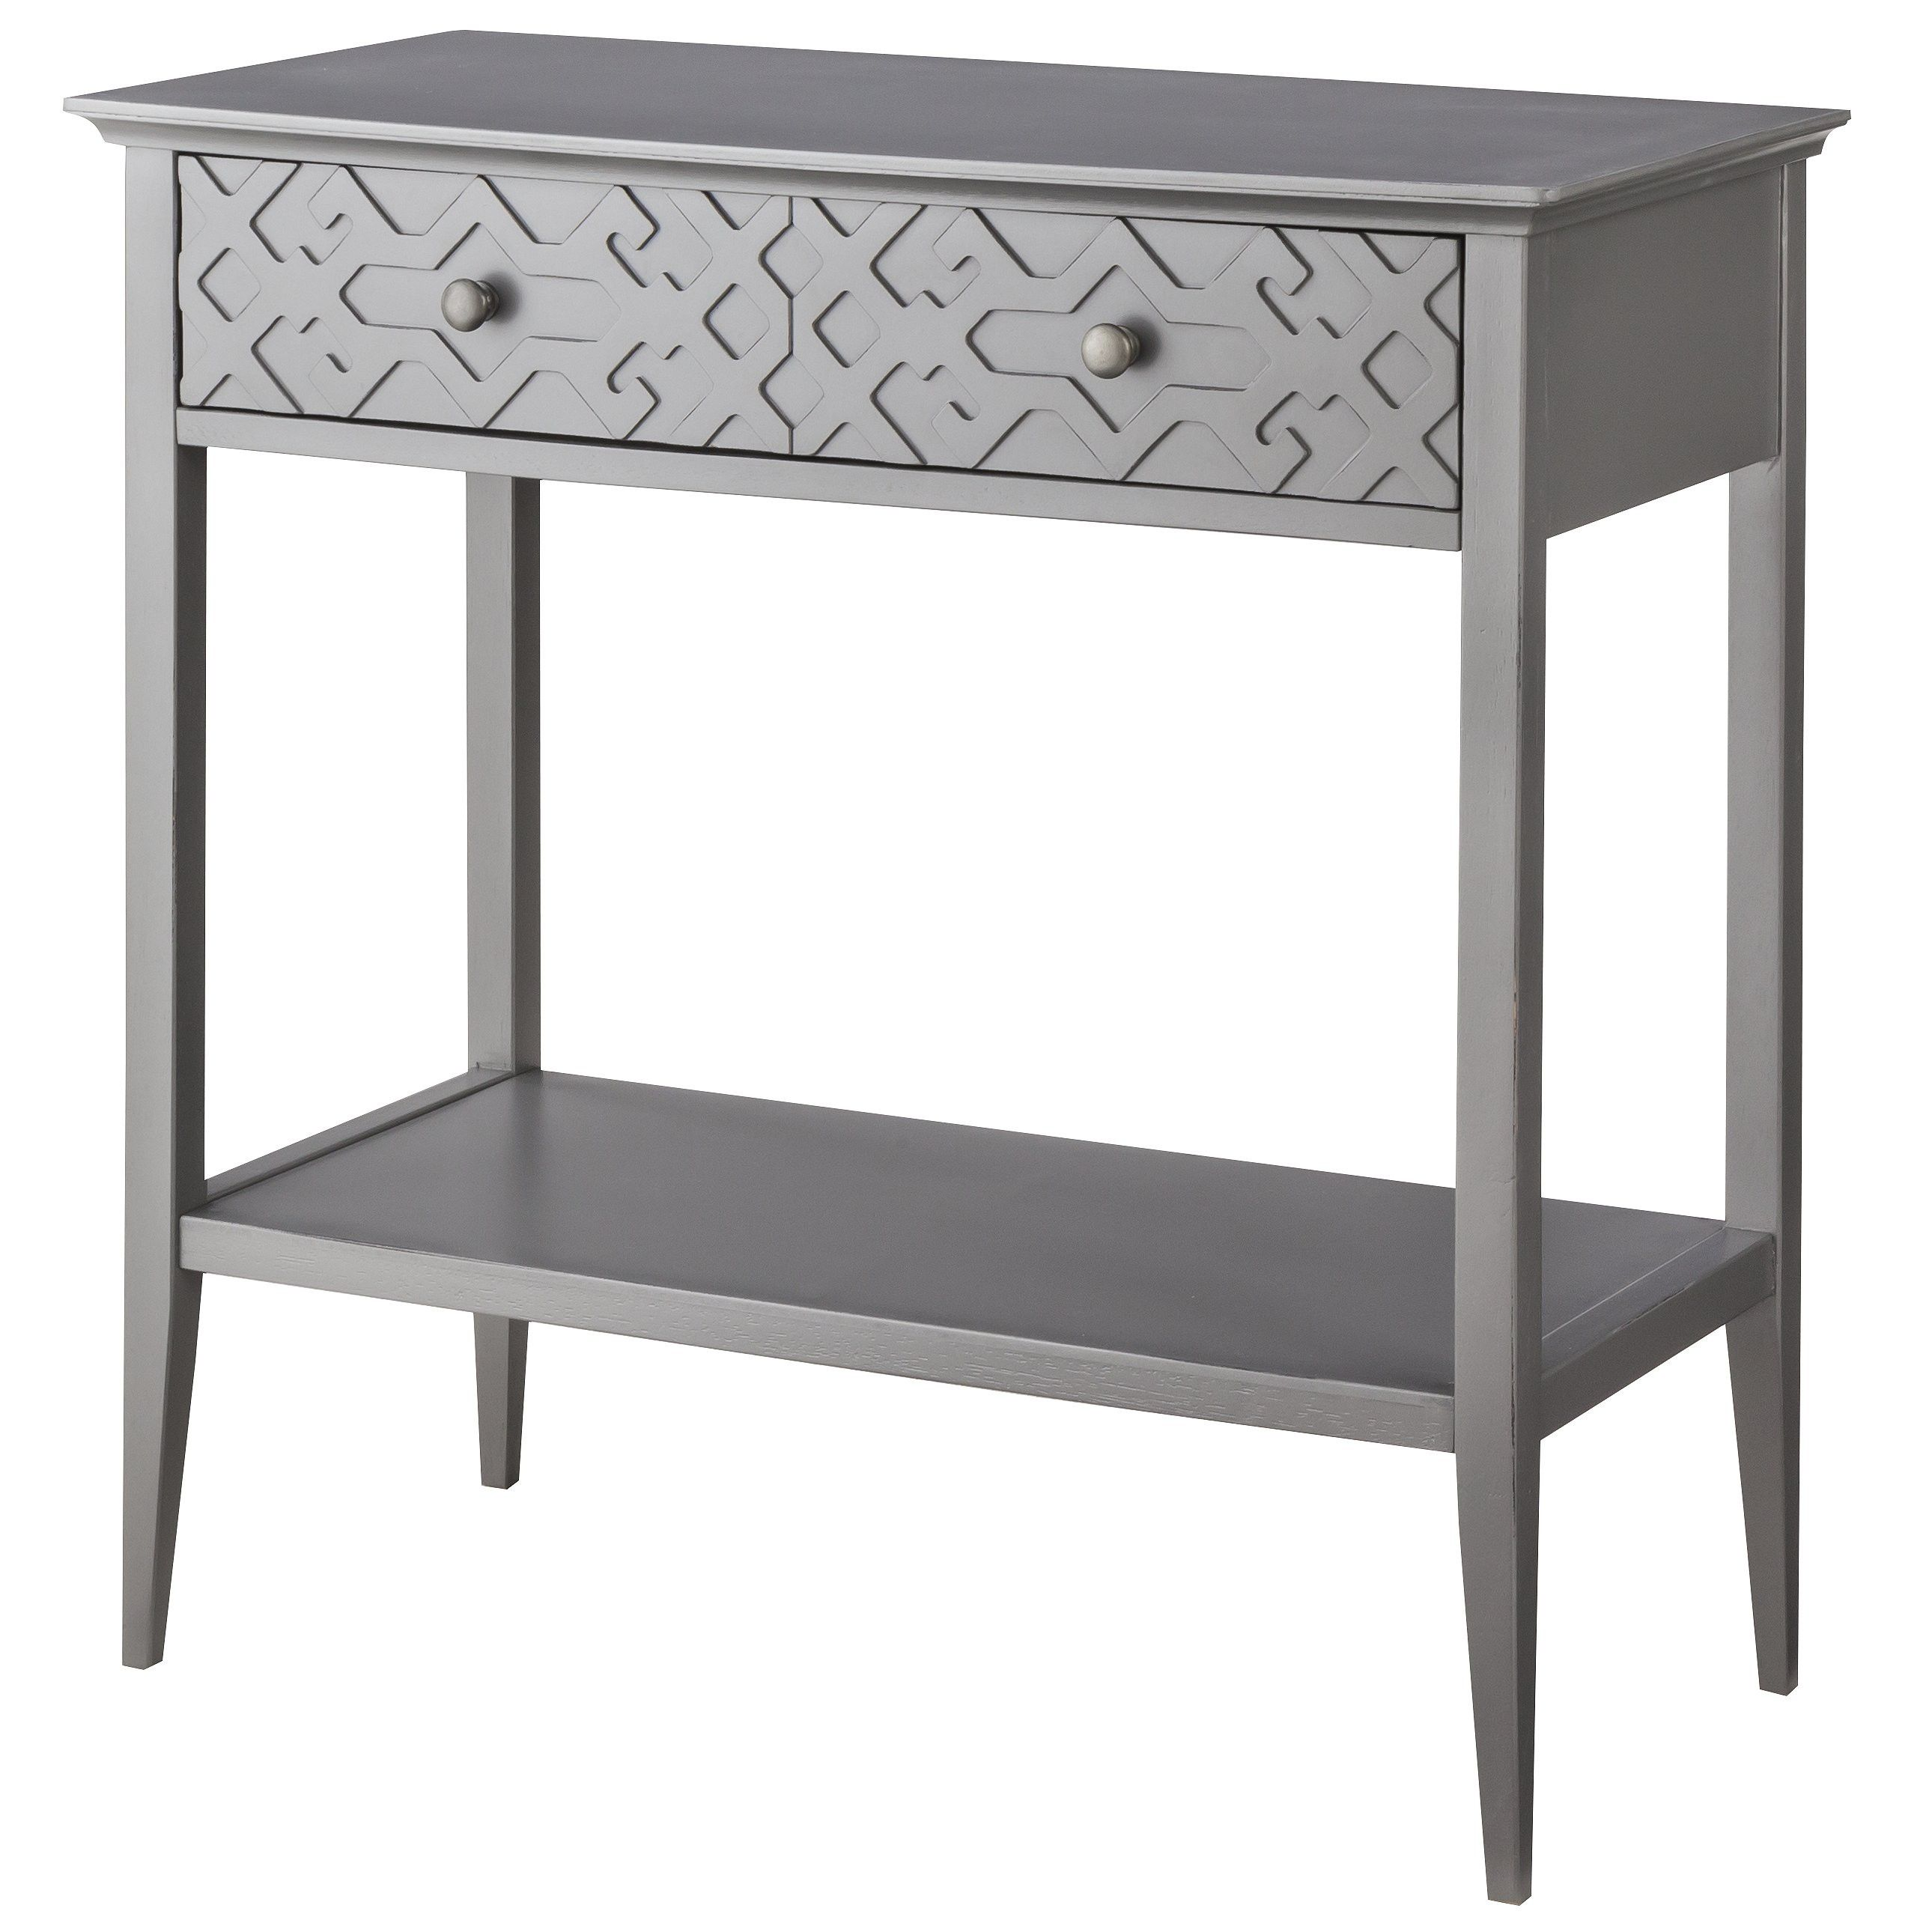 threshold fretwork console table target hardecore owings accent ethan allen counter stools home decor ping sofa clearance craigslist coffee goods lamp sets brown end set candle